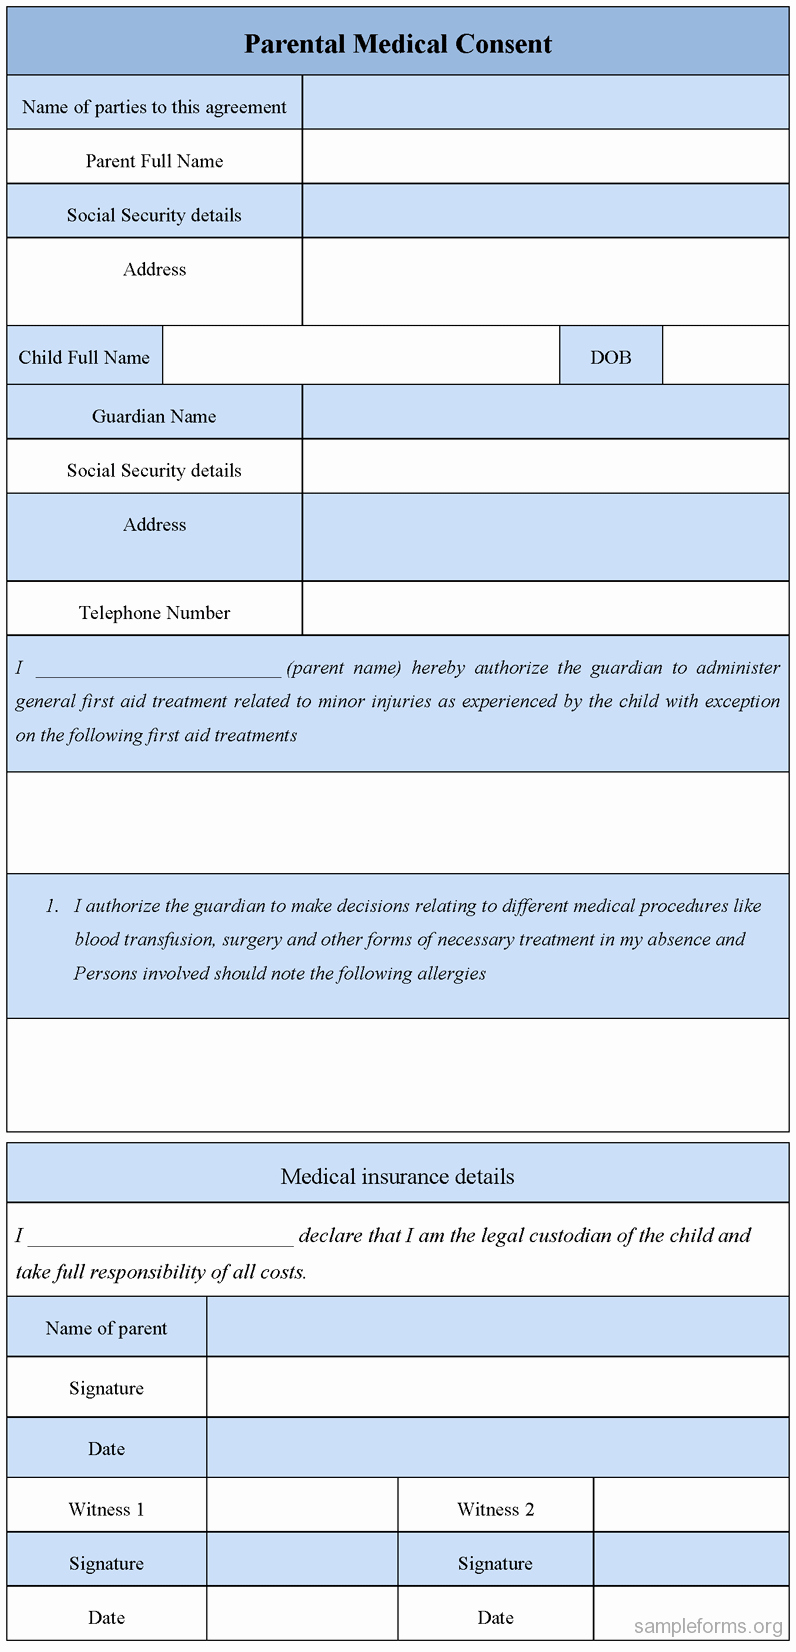 Parental Consent forms Template Lovely Parental Medical Consent form Sample forms